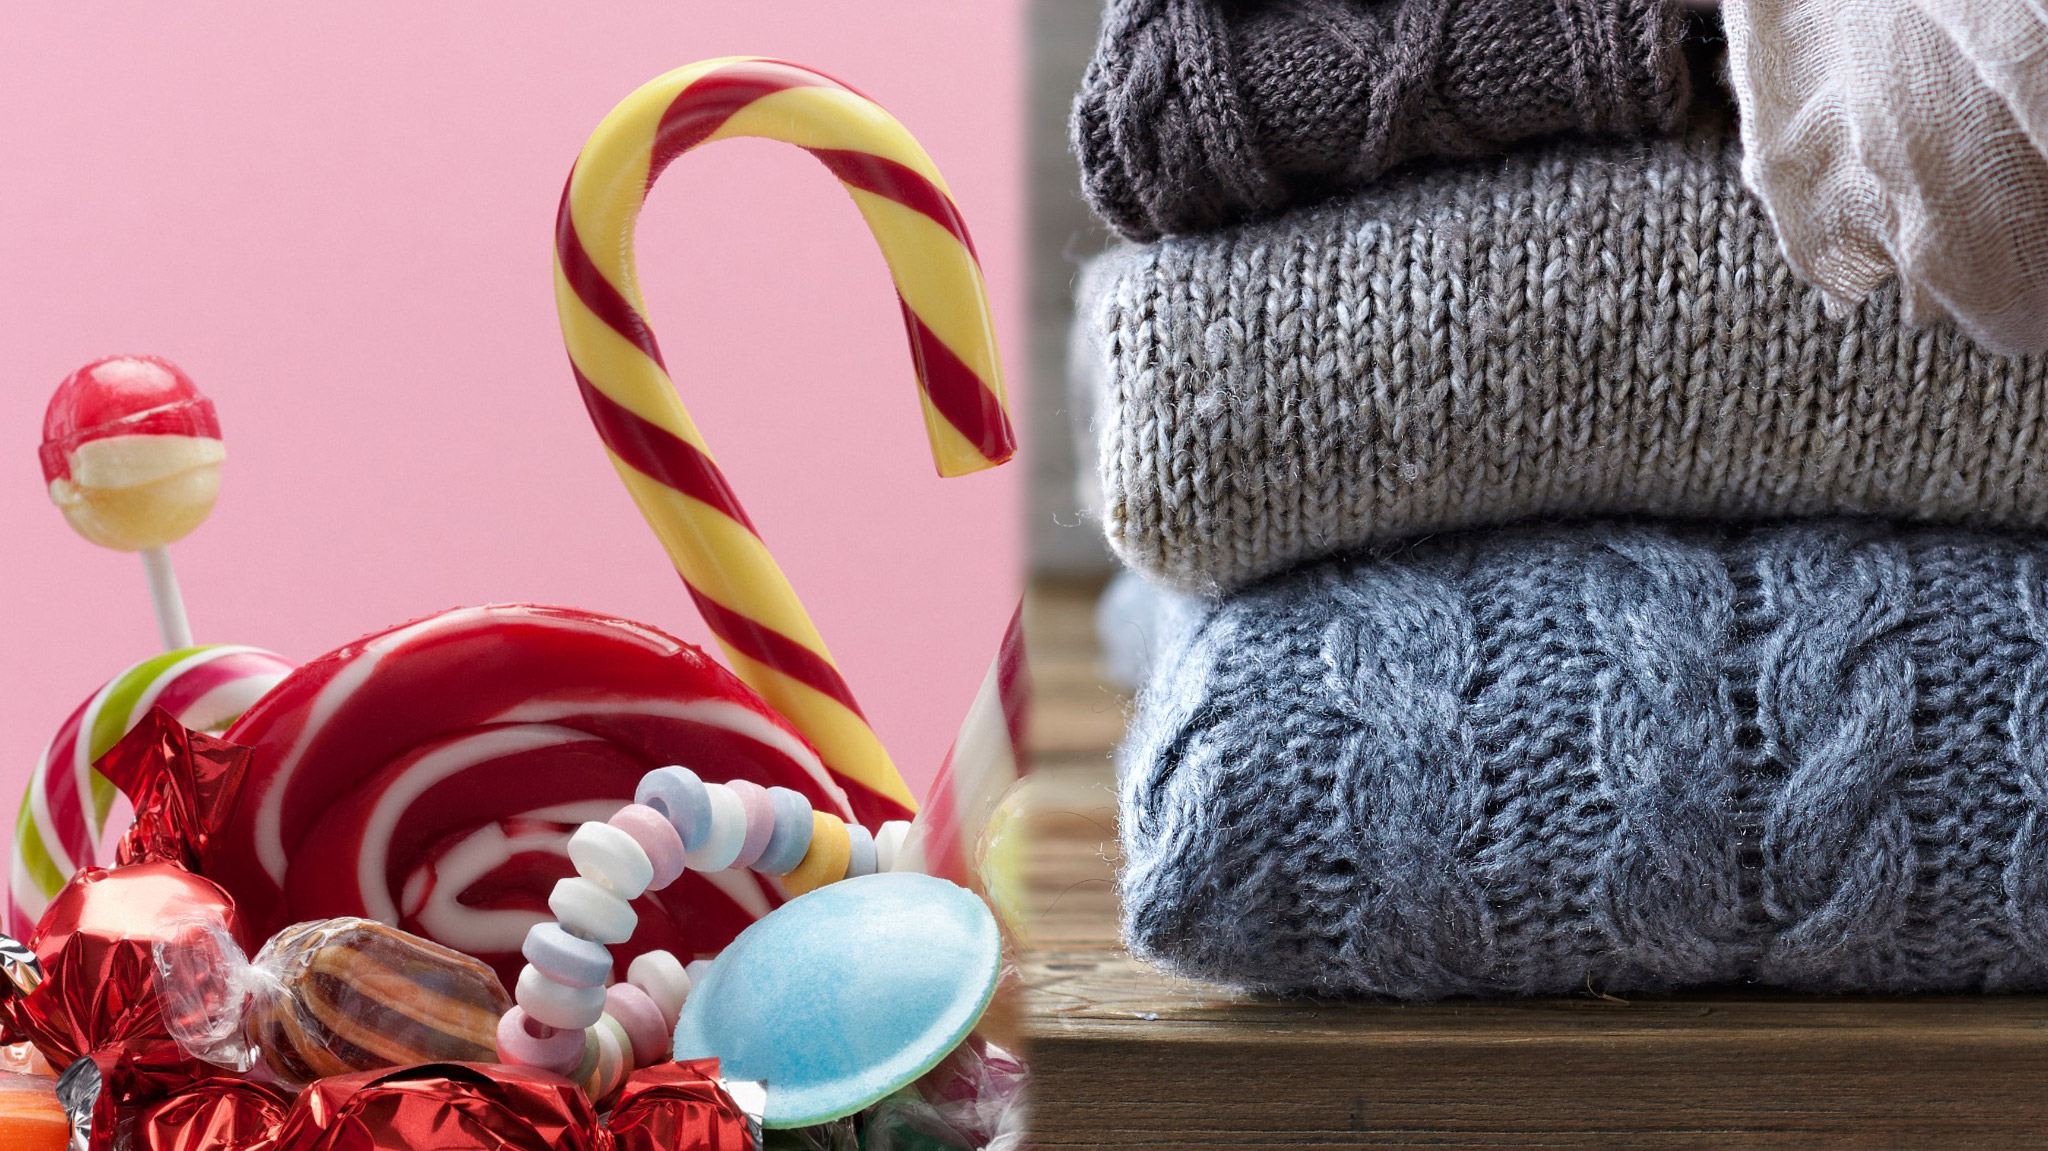 Kim: Candy and sweaters